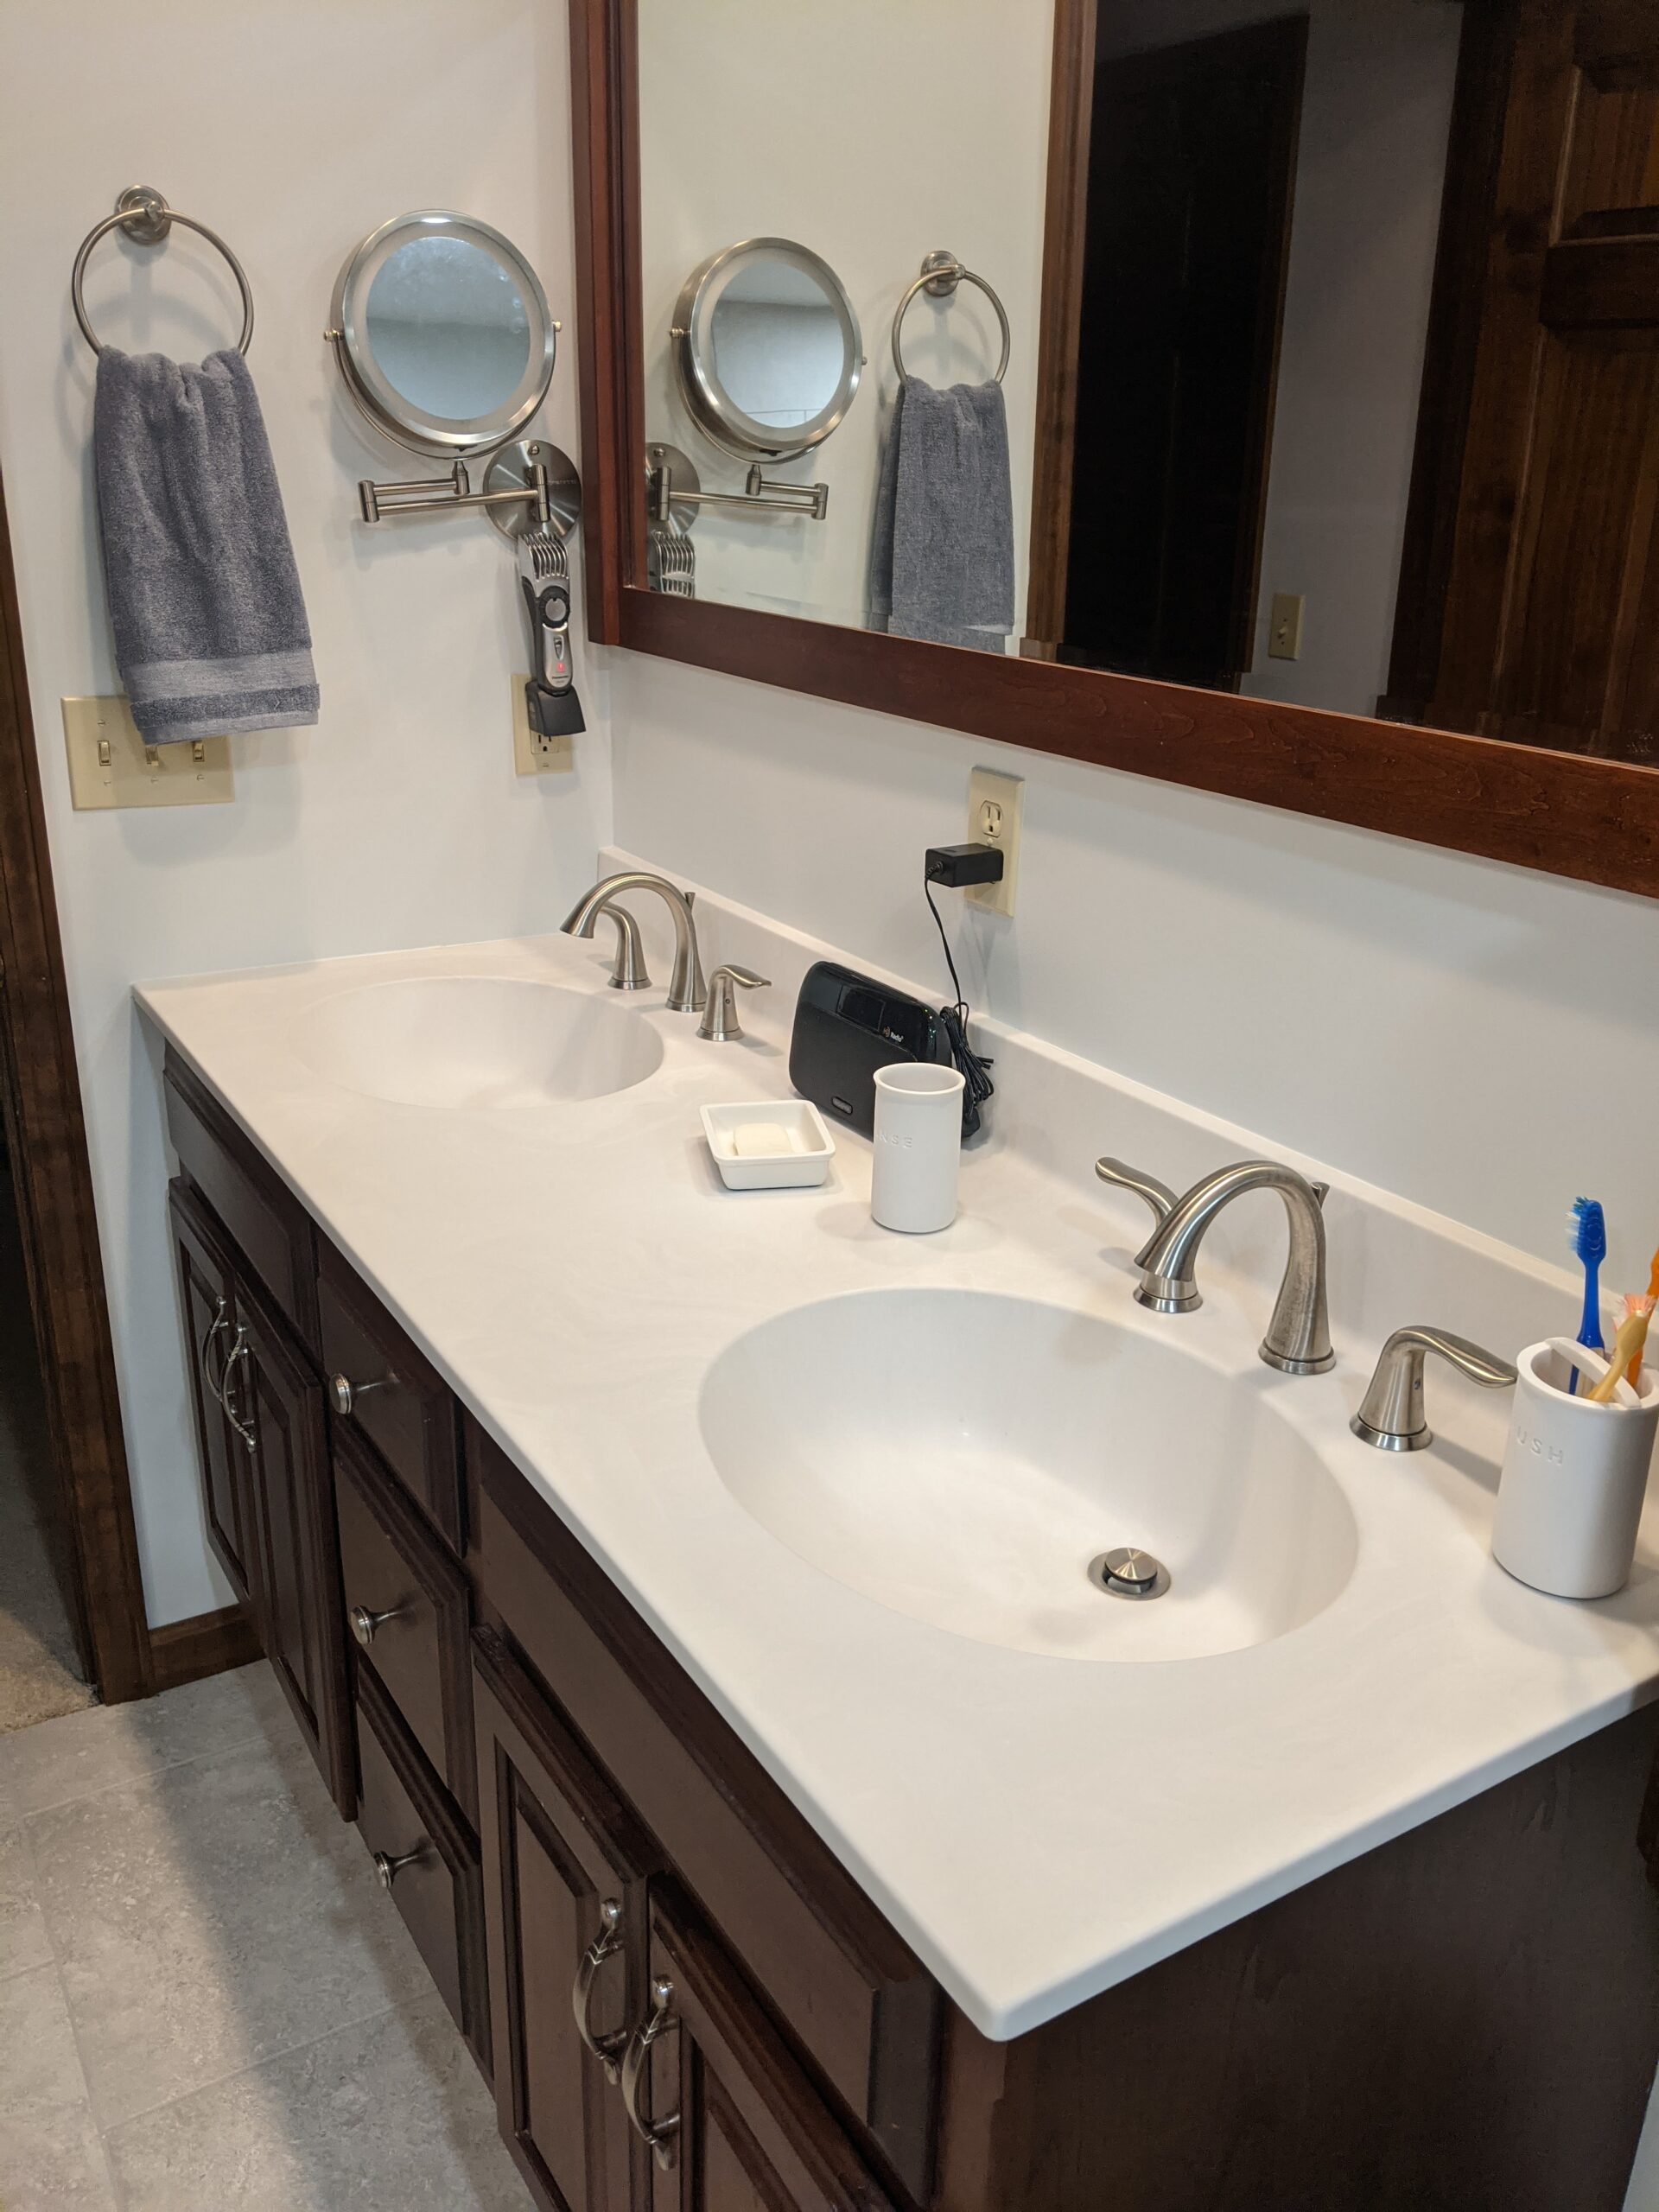 "New updated cultured marble double bowl vanity top with 8"" widespread faucets in stainless steel"